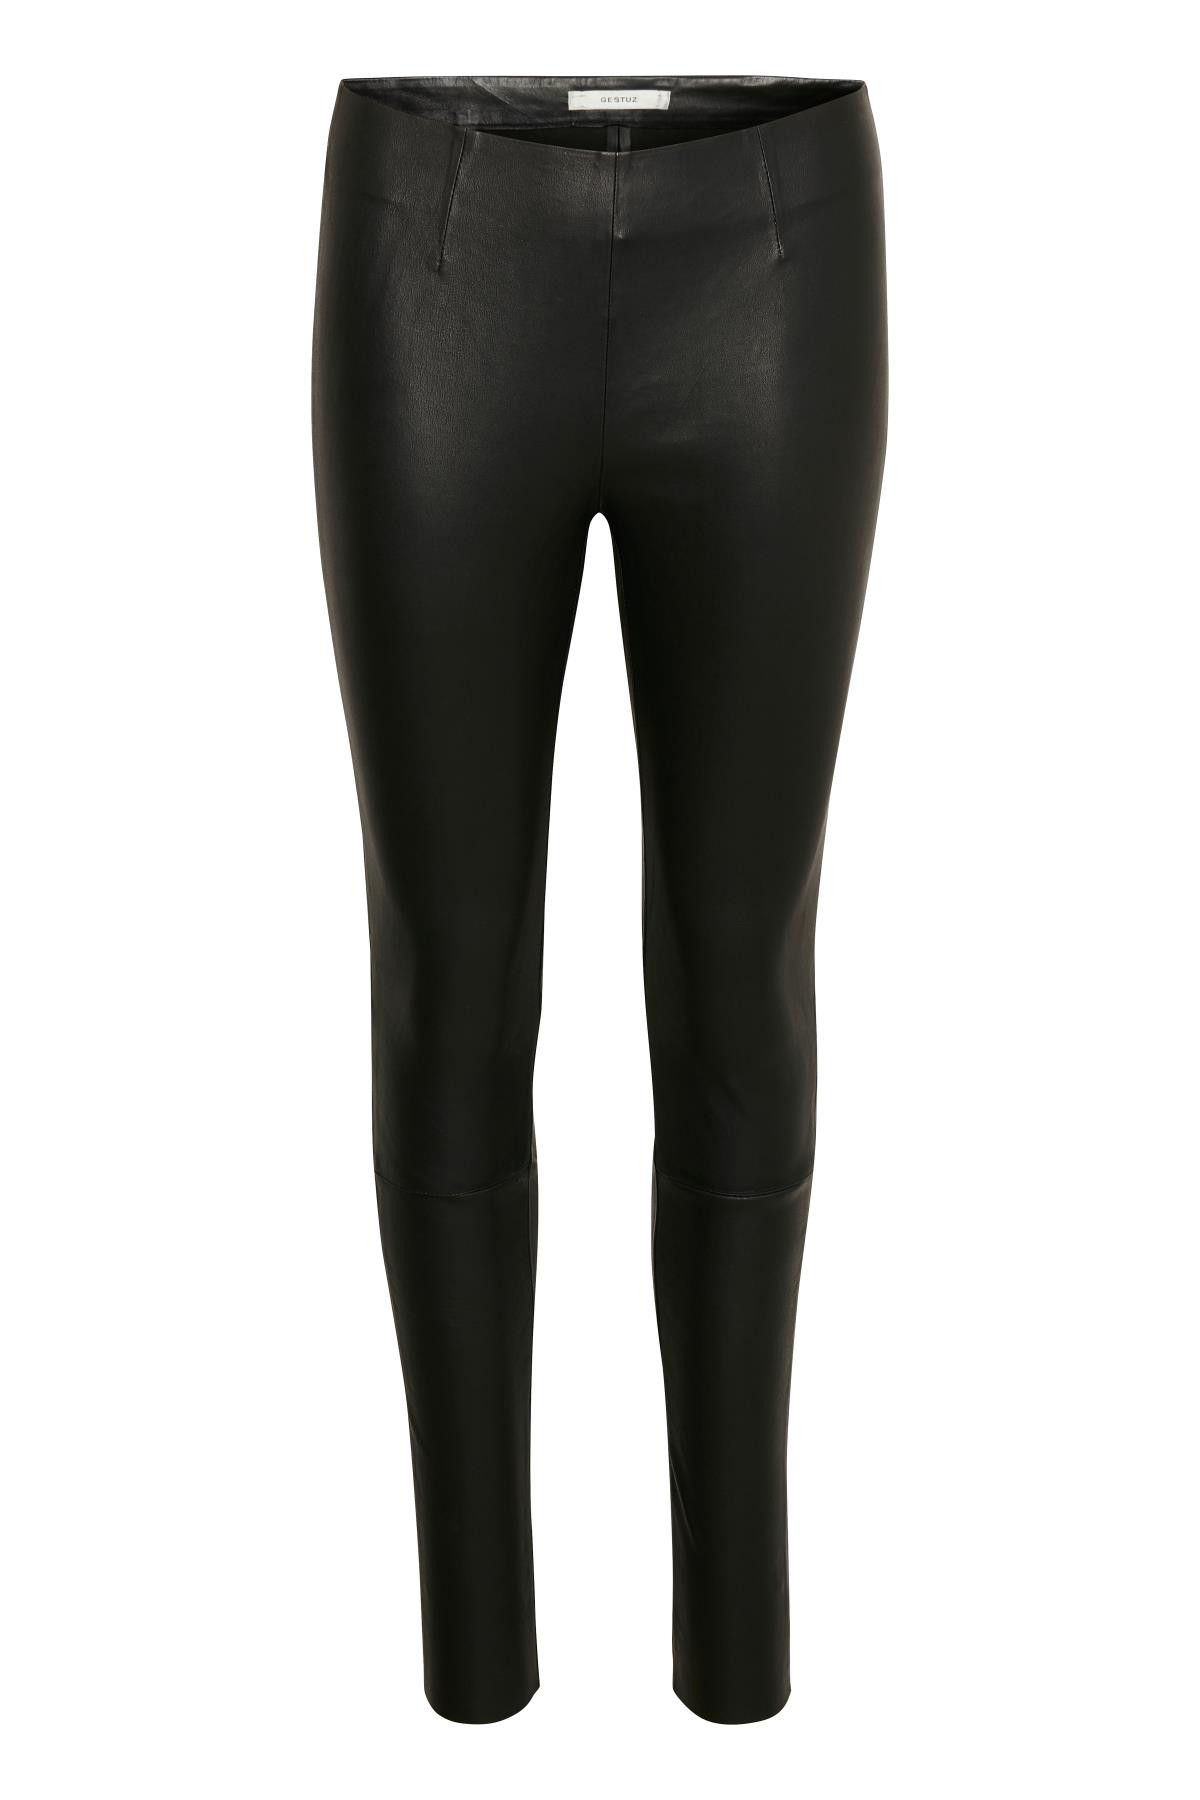 Image of   GESTUZ SASHA LEGGINGS (Black 90001, 42)